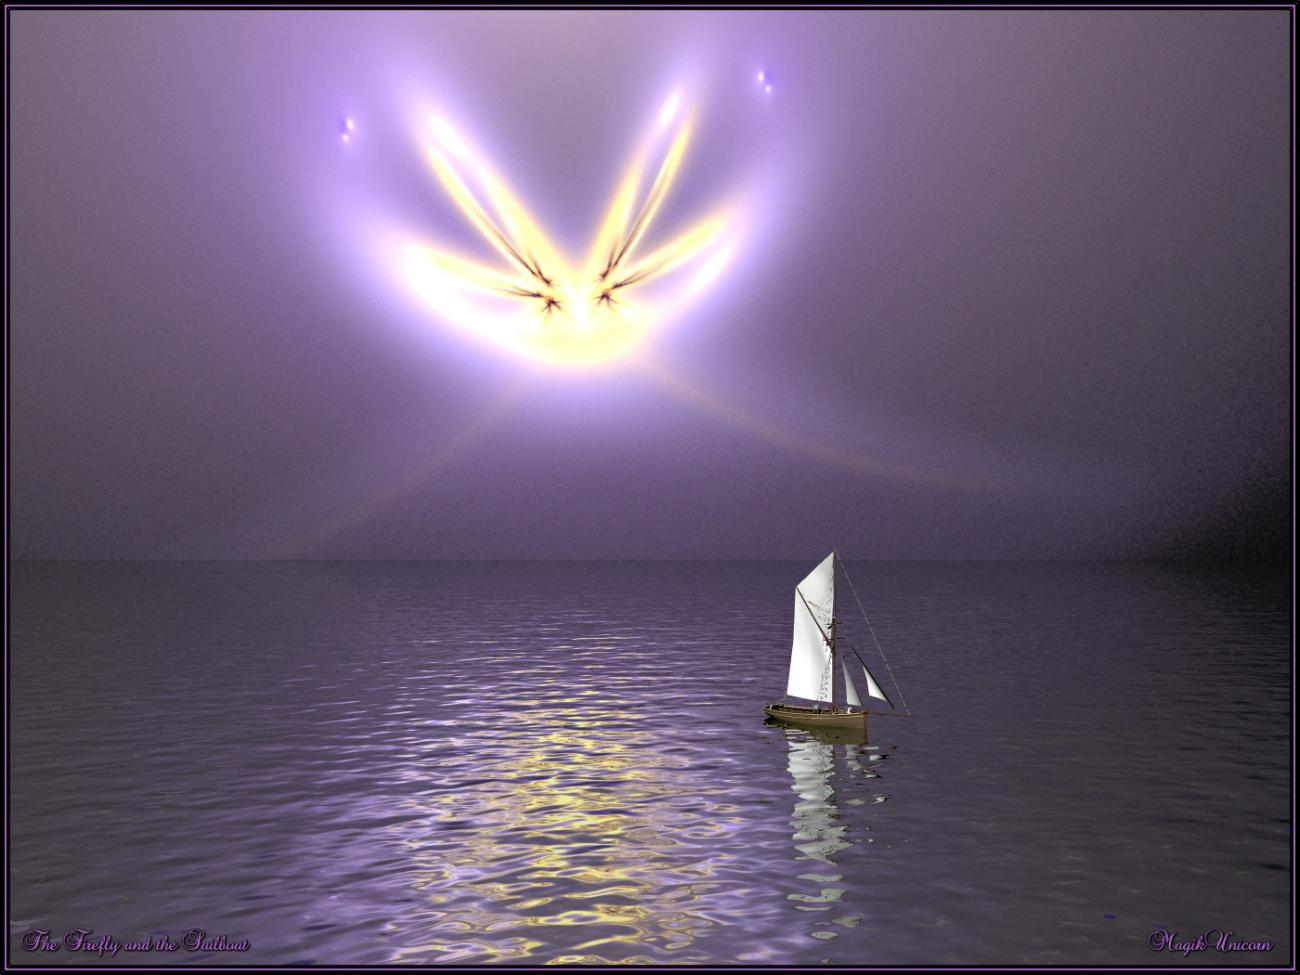 The Firefly and the Sailboat